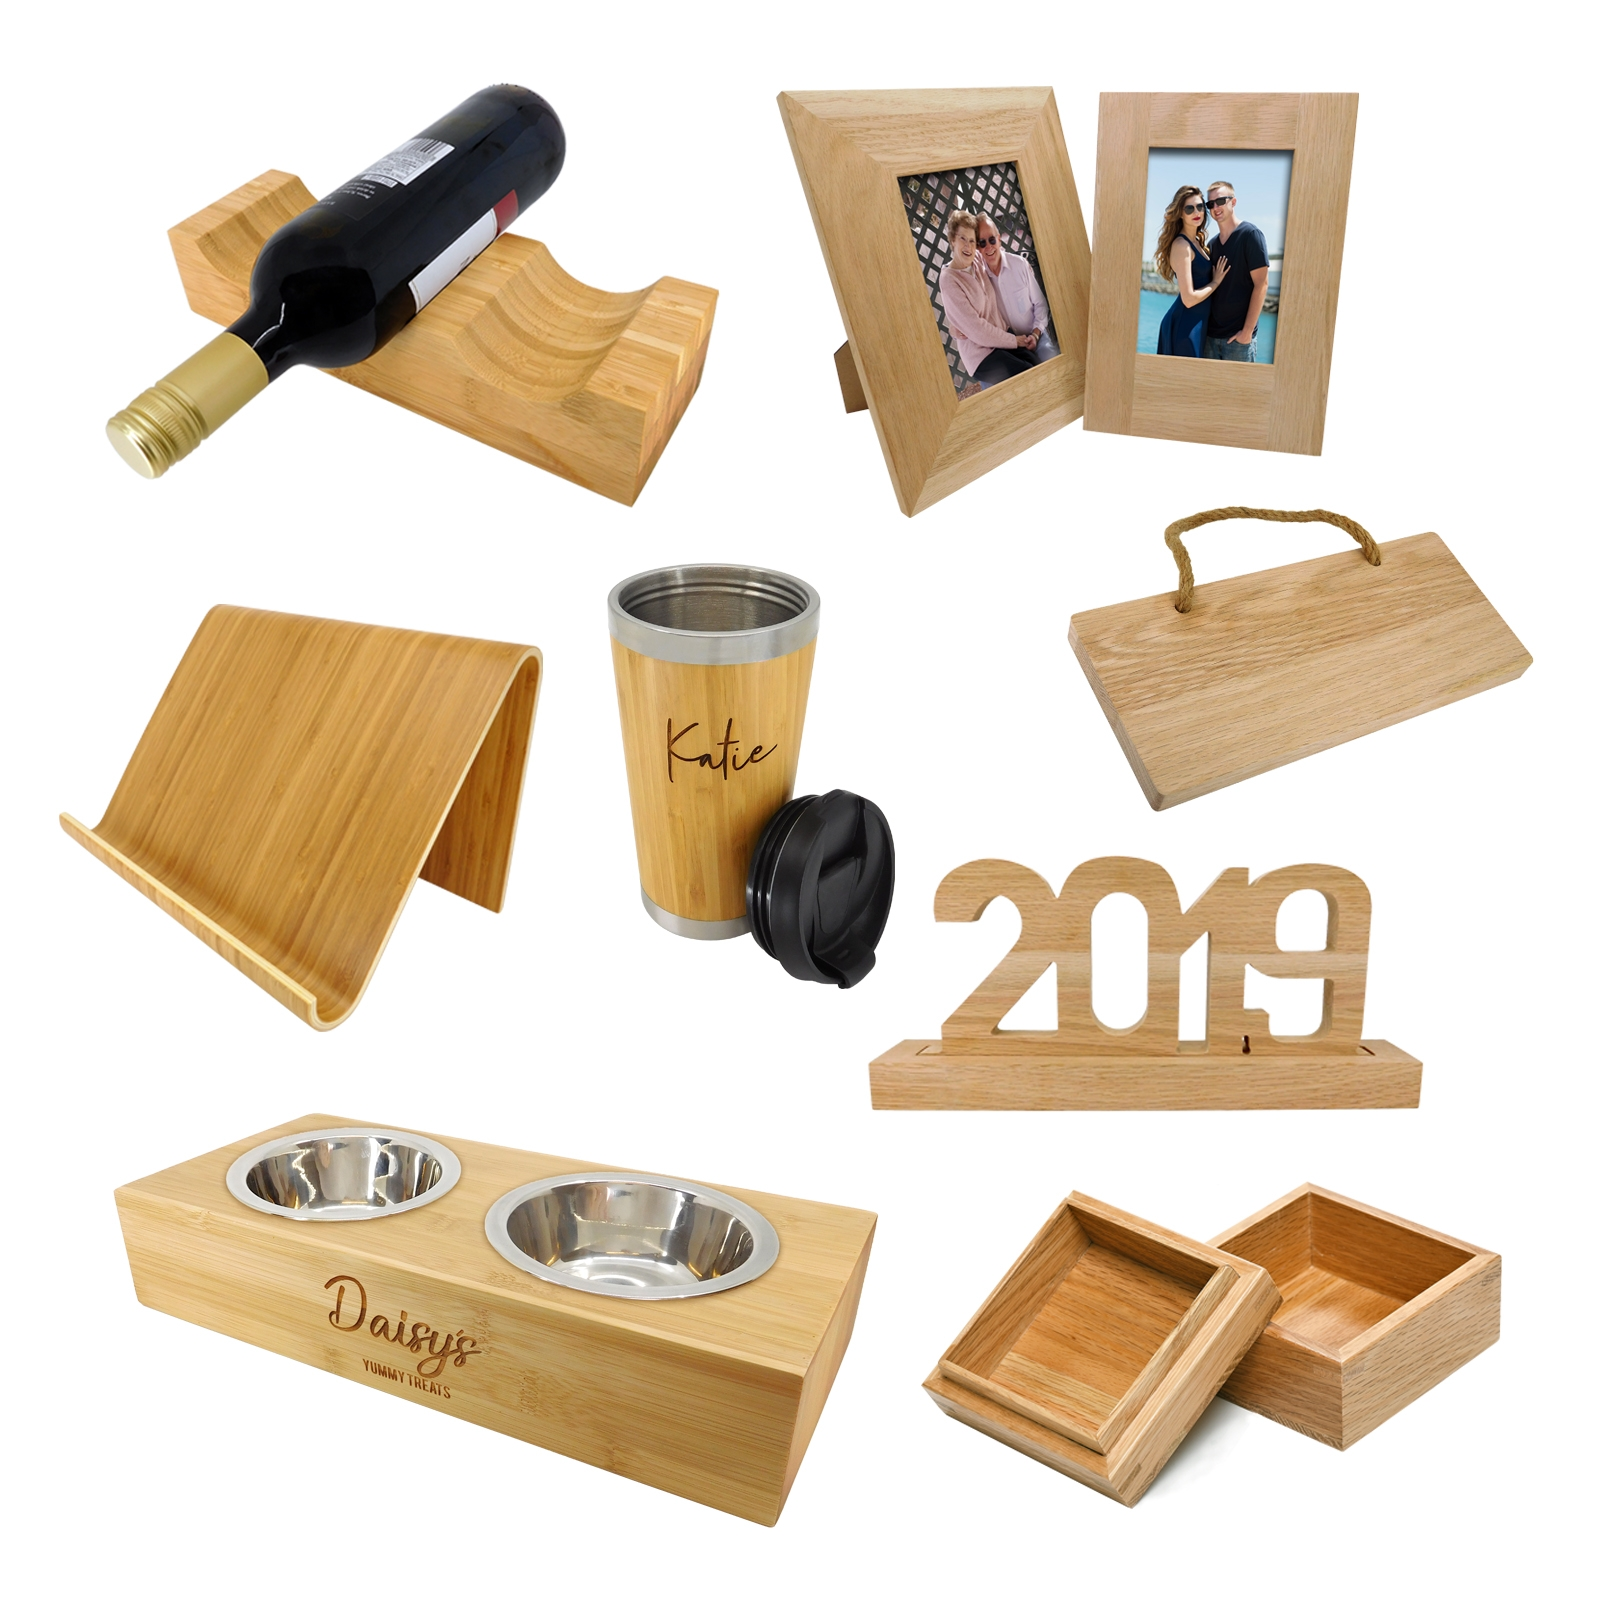 Other Wooden Products & Gifts